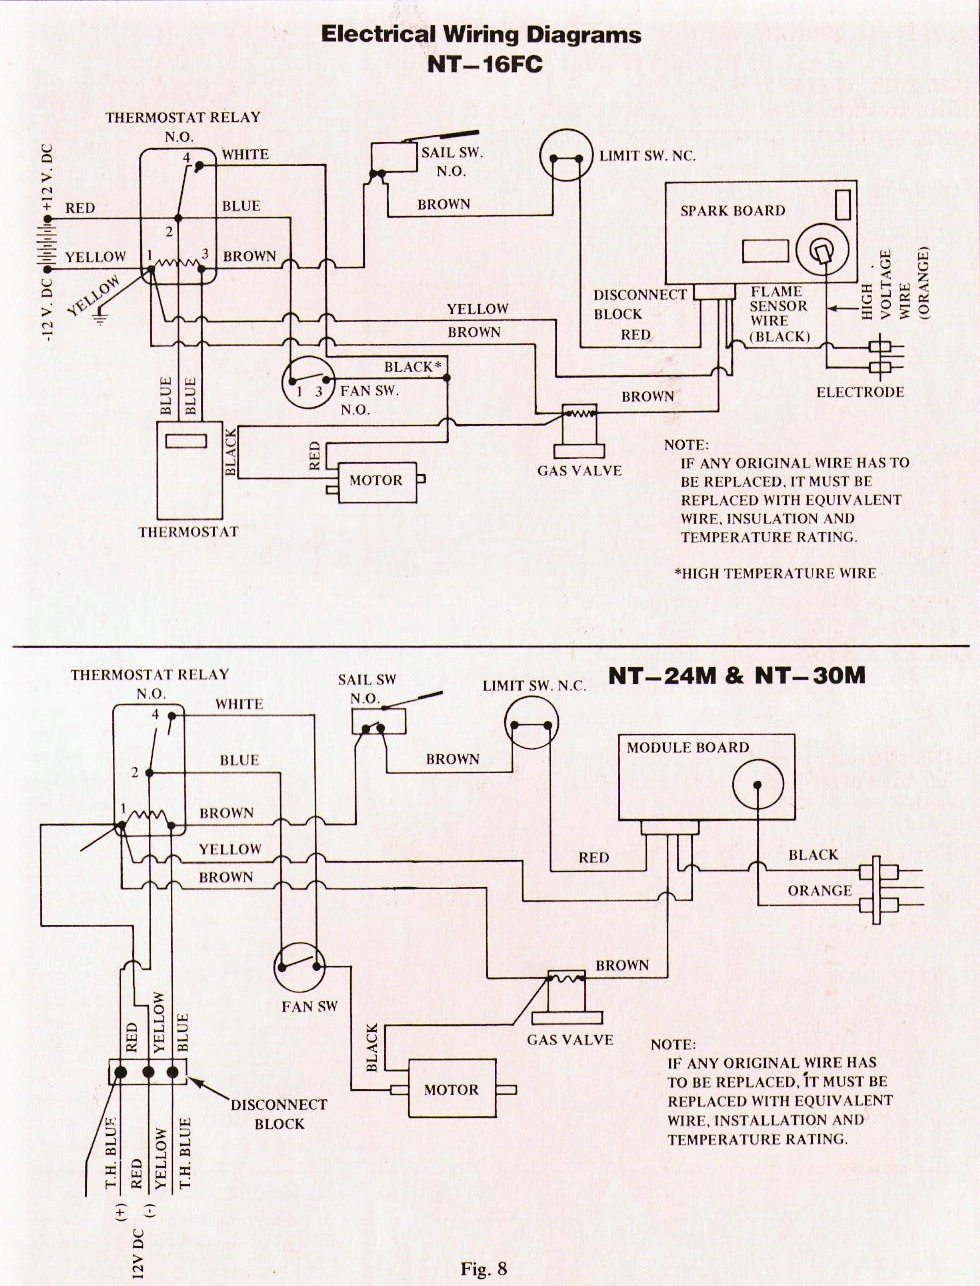 Suburban Nt 24m Nt30m Nt16fc Wiring Diagrams Airstream Forums Diagram Social Click Image For Larger Version Name 30m Furnace